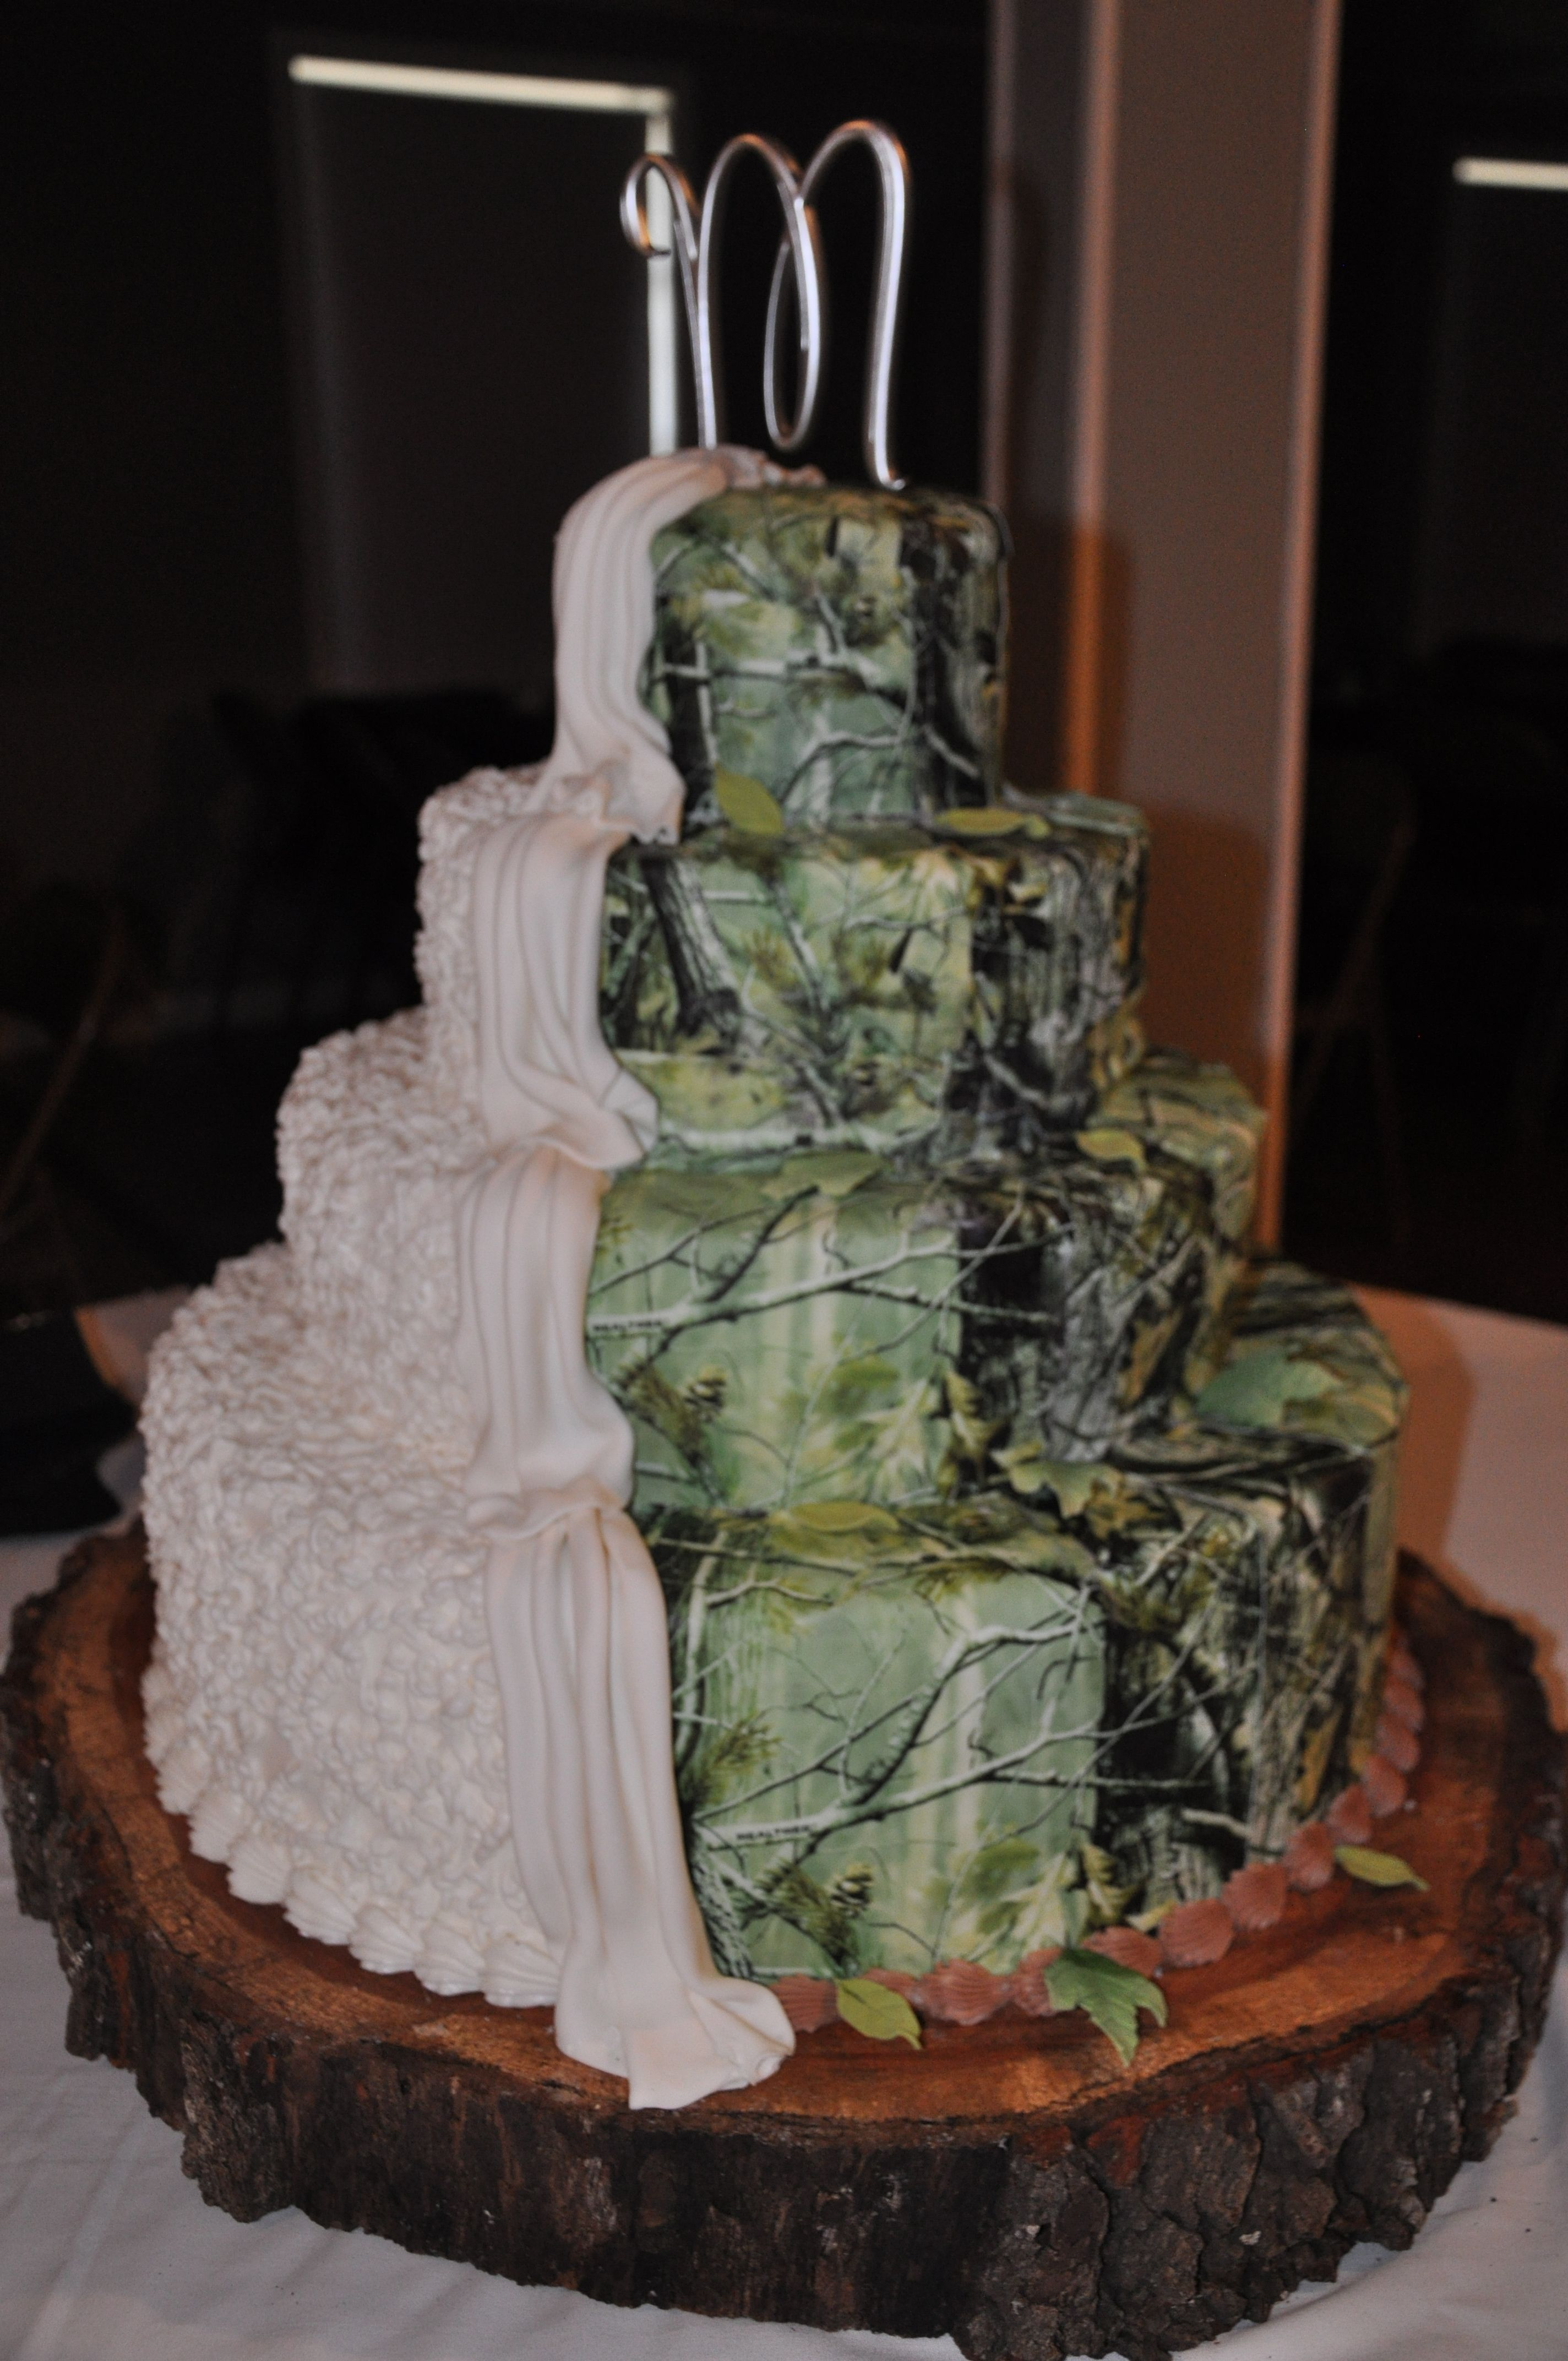 Picture Of An Odd Wedding Cake But Very Interesting Idea